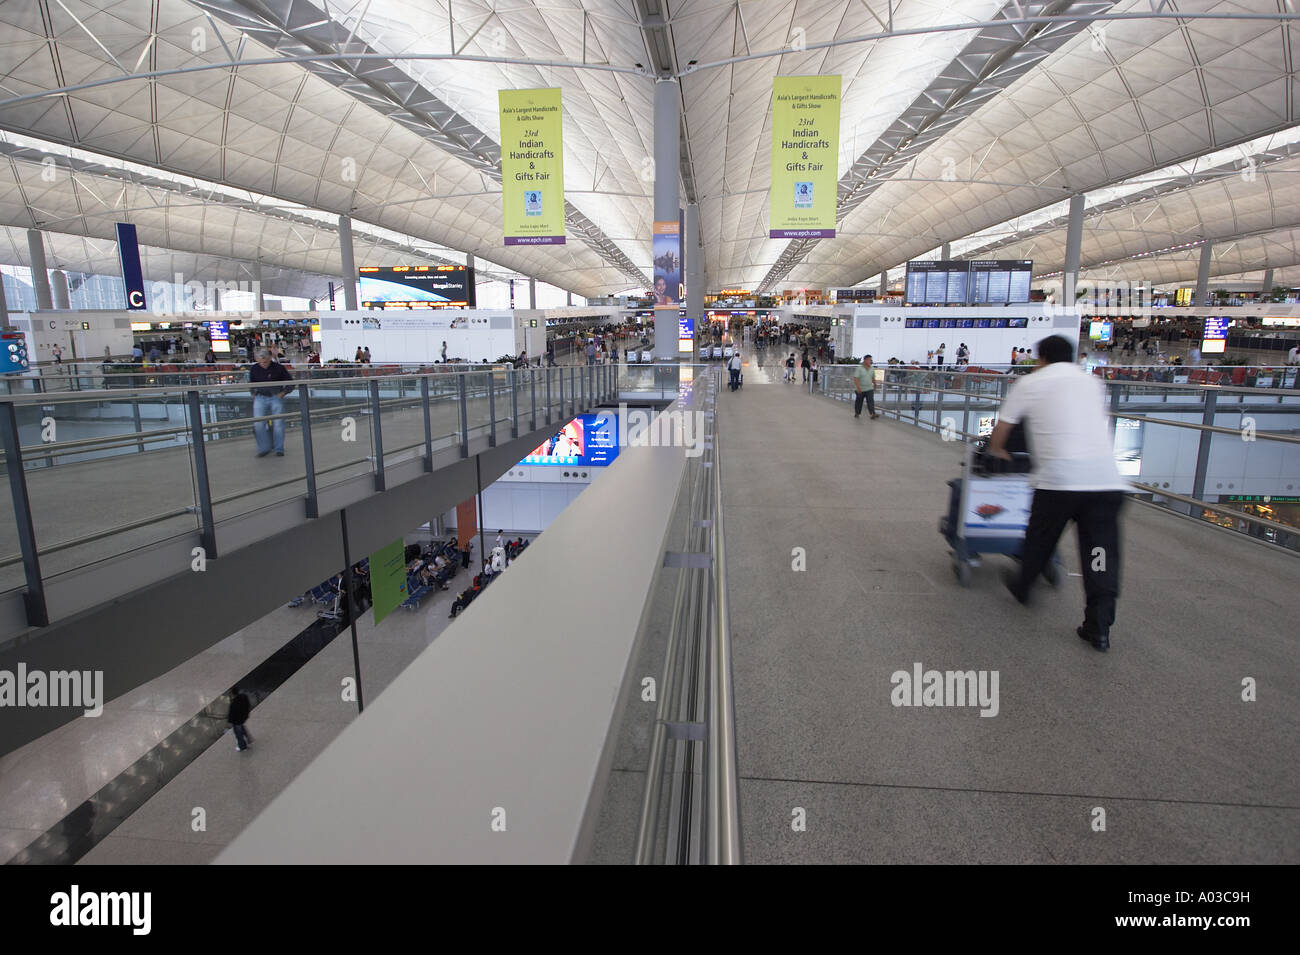 Male Passenger Pushing Trolley In Hong Kong International Airport - Stock Image